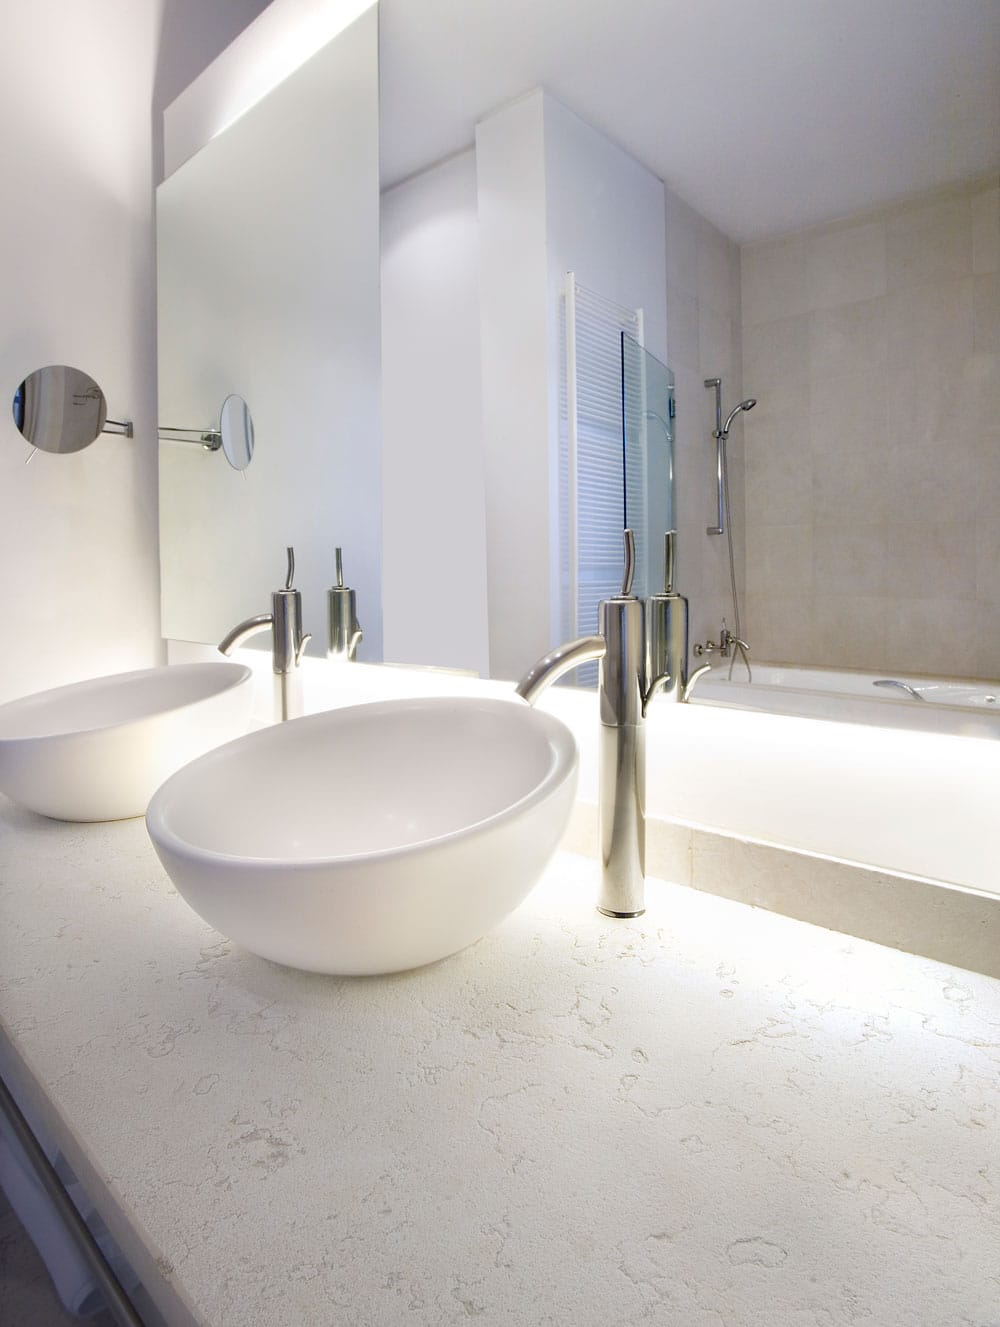 Bianco Perlino white marble bathroom - Baño de mármol Blanco Perlino